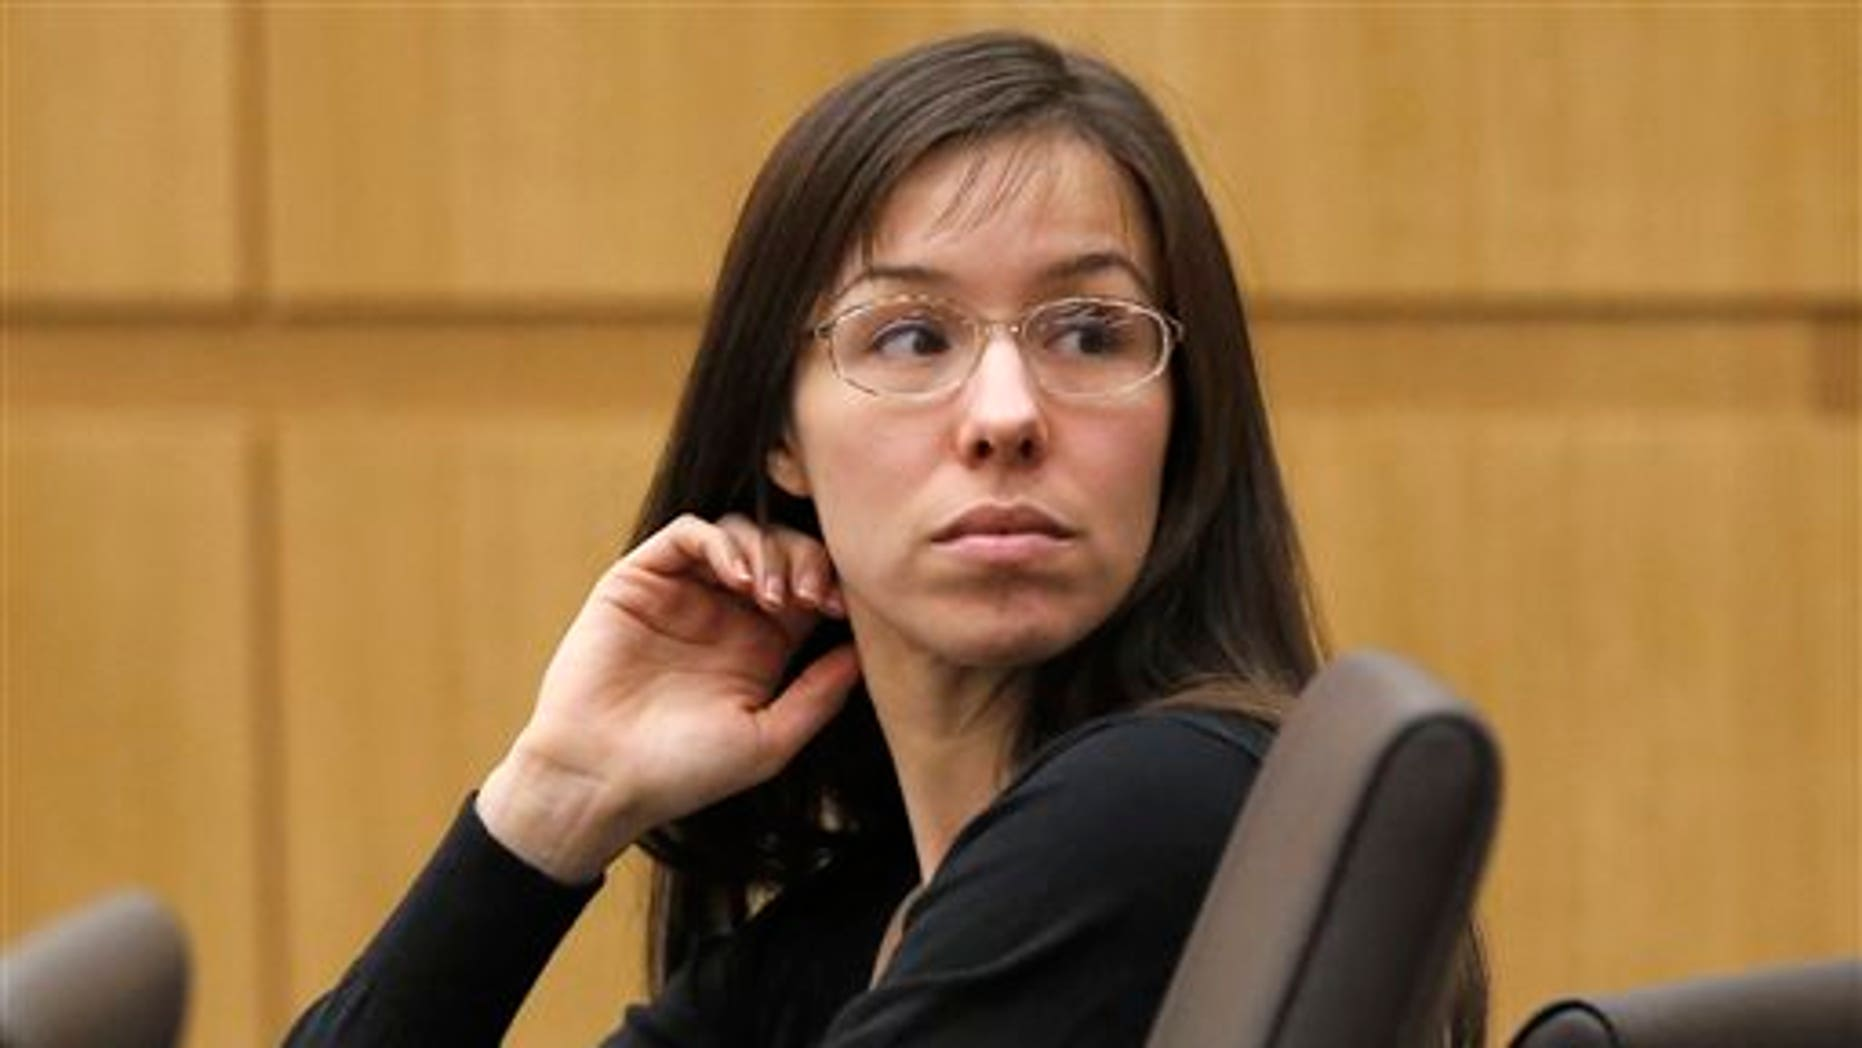 Jodi Arias appearing for her trial in Maricopa County Superior court in Phoenix, on Jan. 9, 2013.